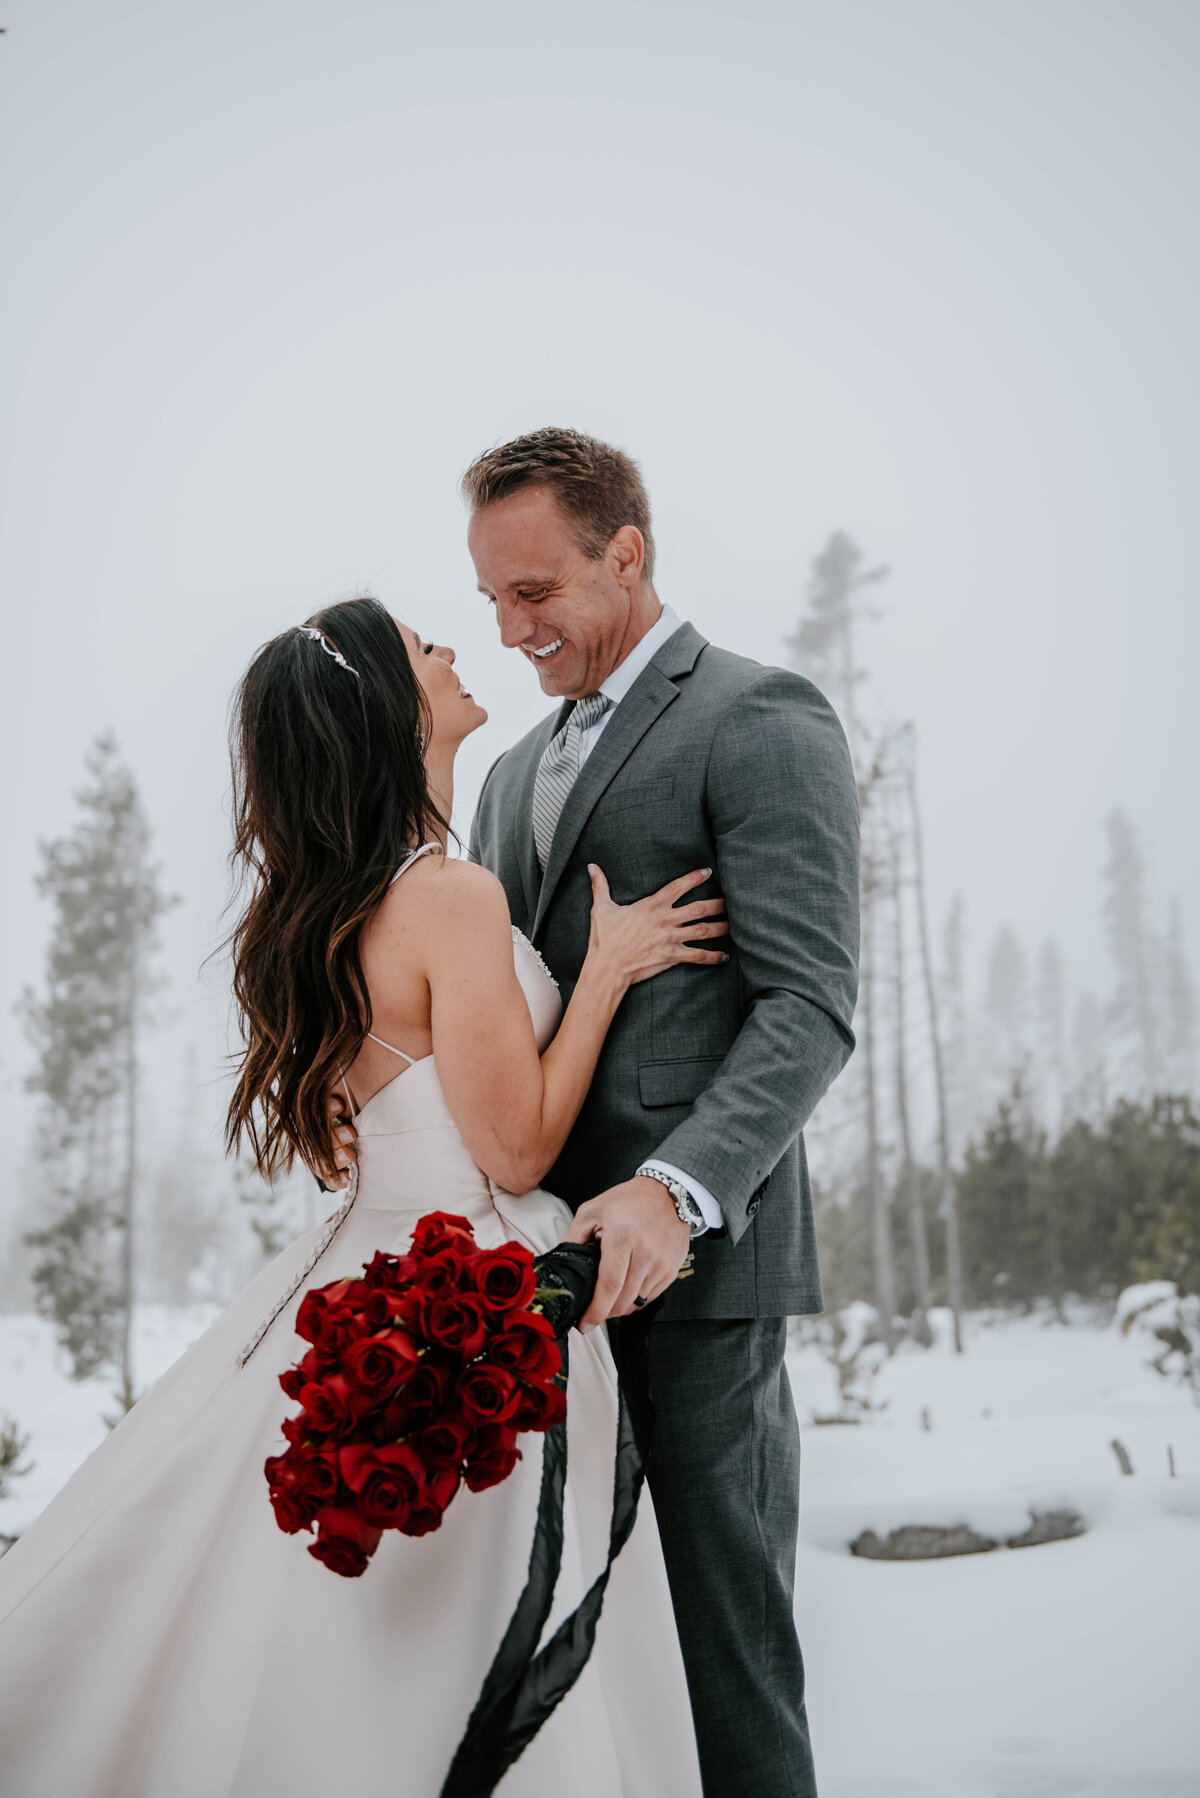 mt-bachelor-snow-winter-elopement-bend-oregon-wedding-photographer-2365